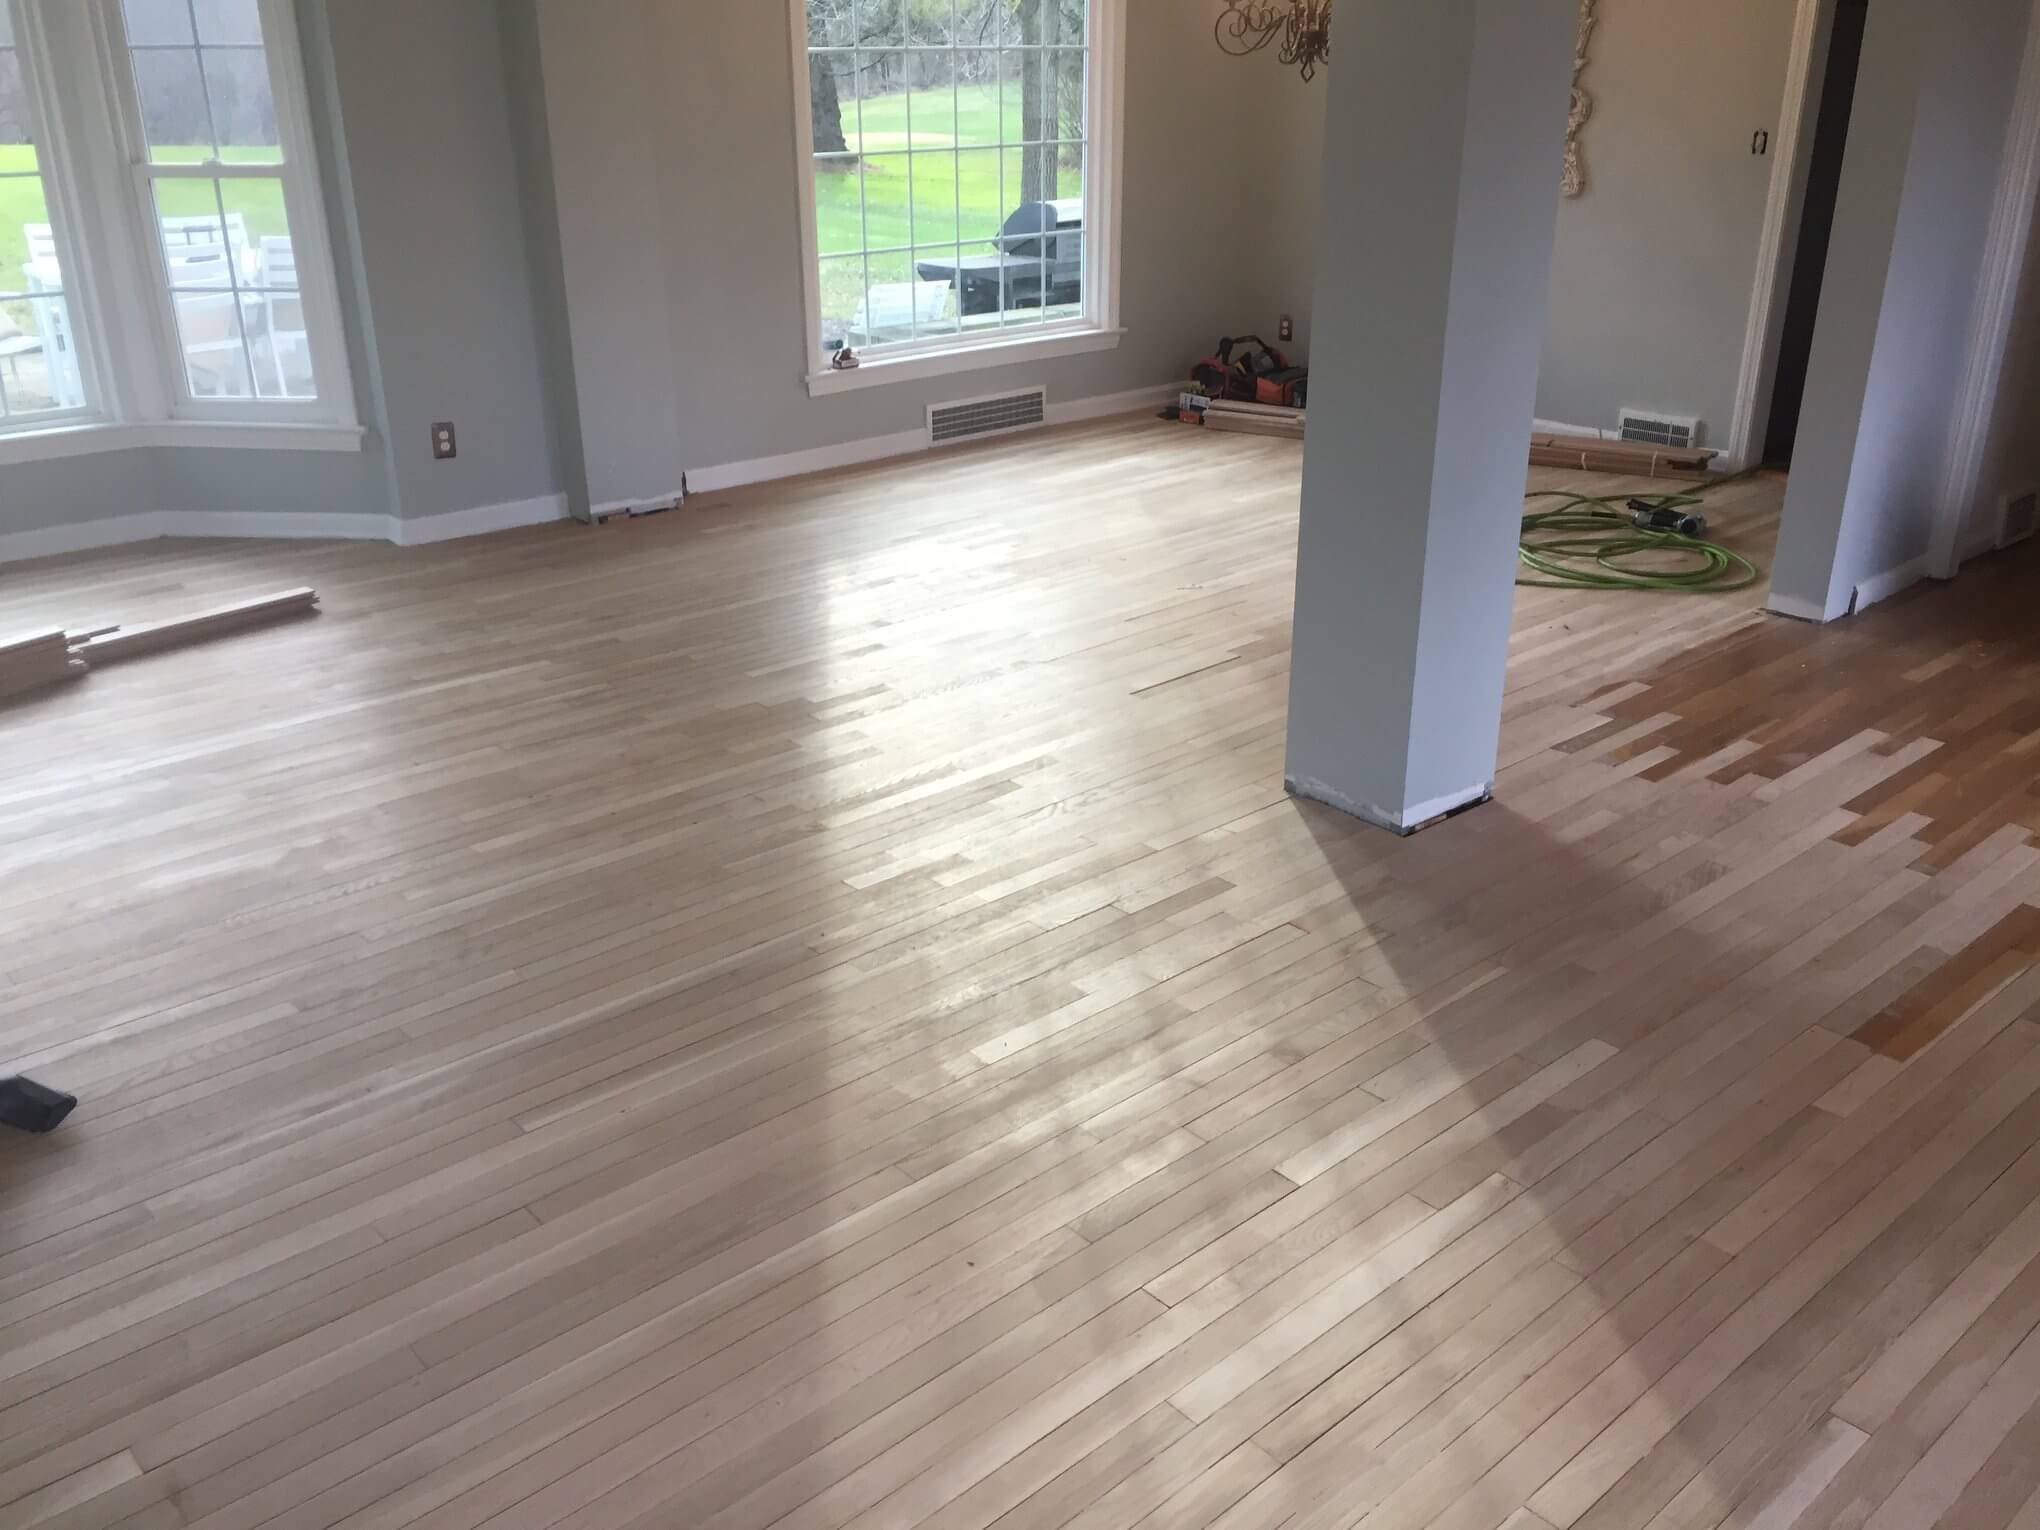 Flooring Refinish and Stain